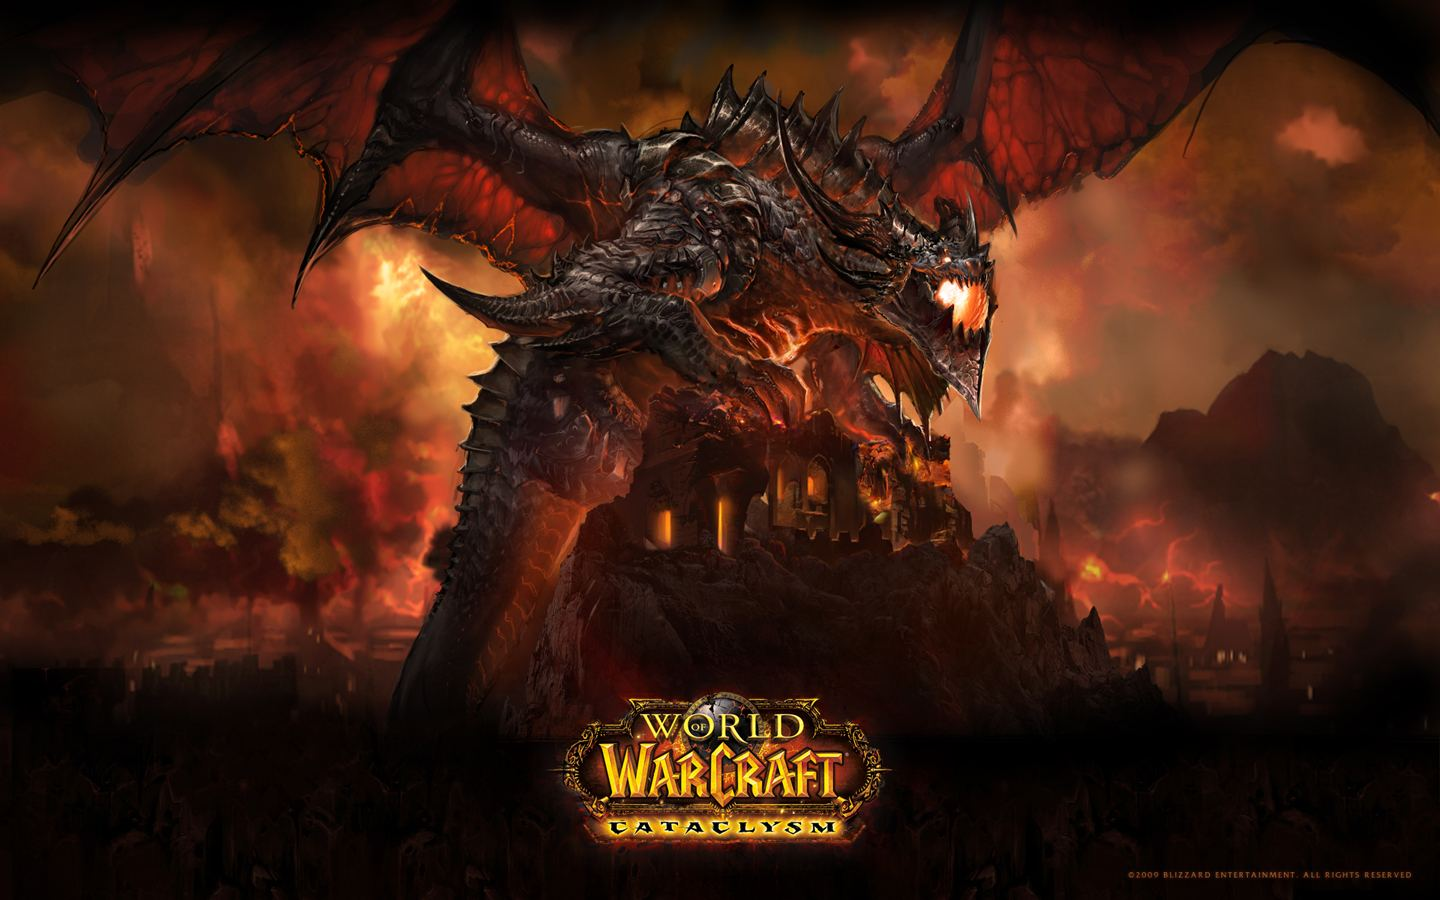 Un par de imagenes de World of Warcraft